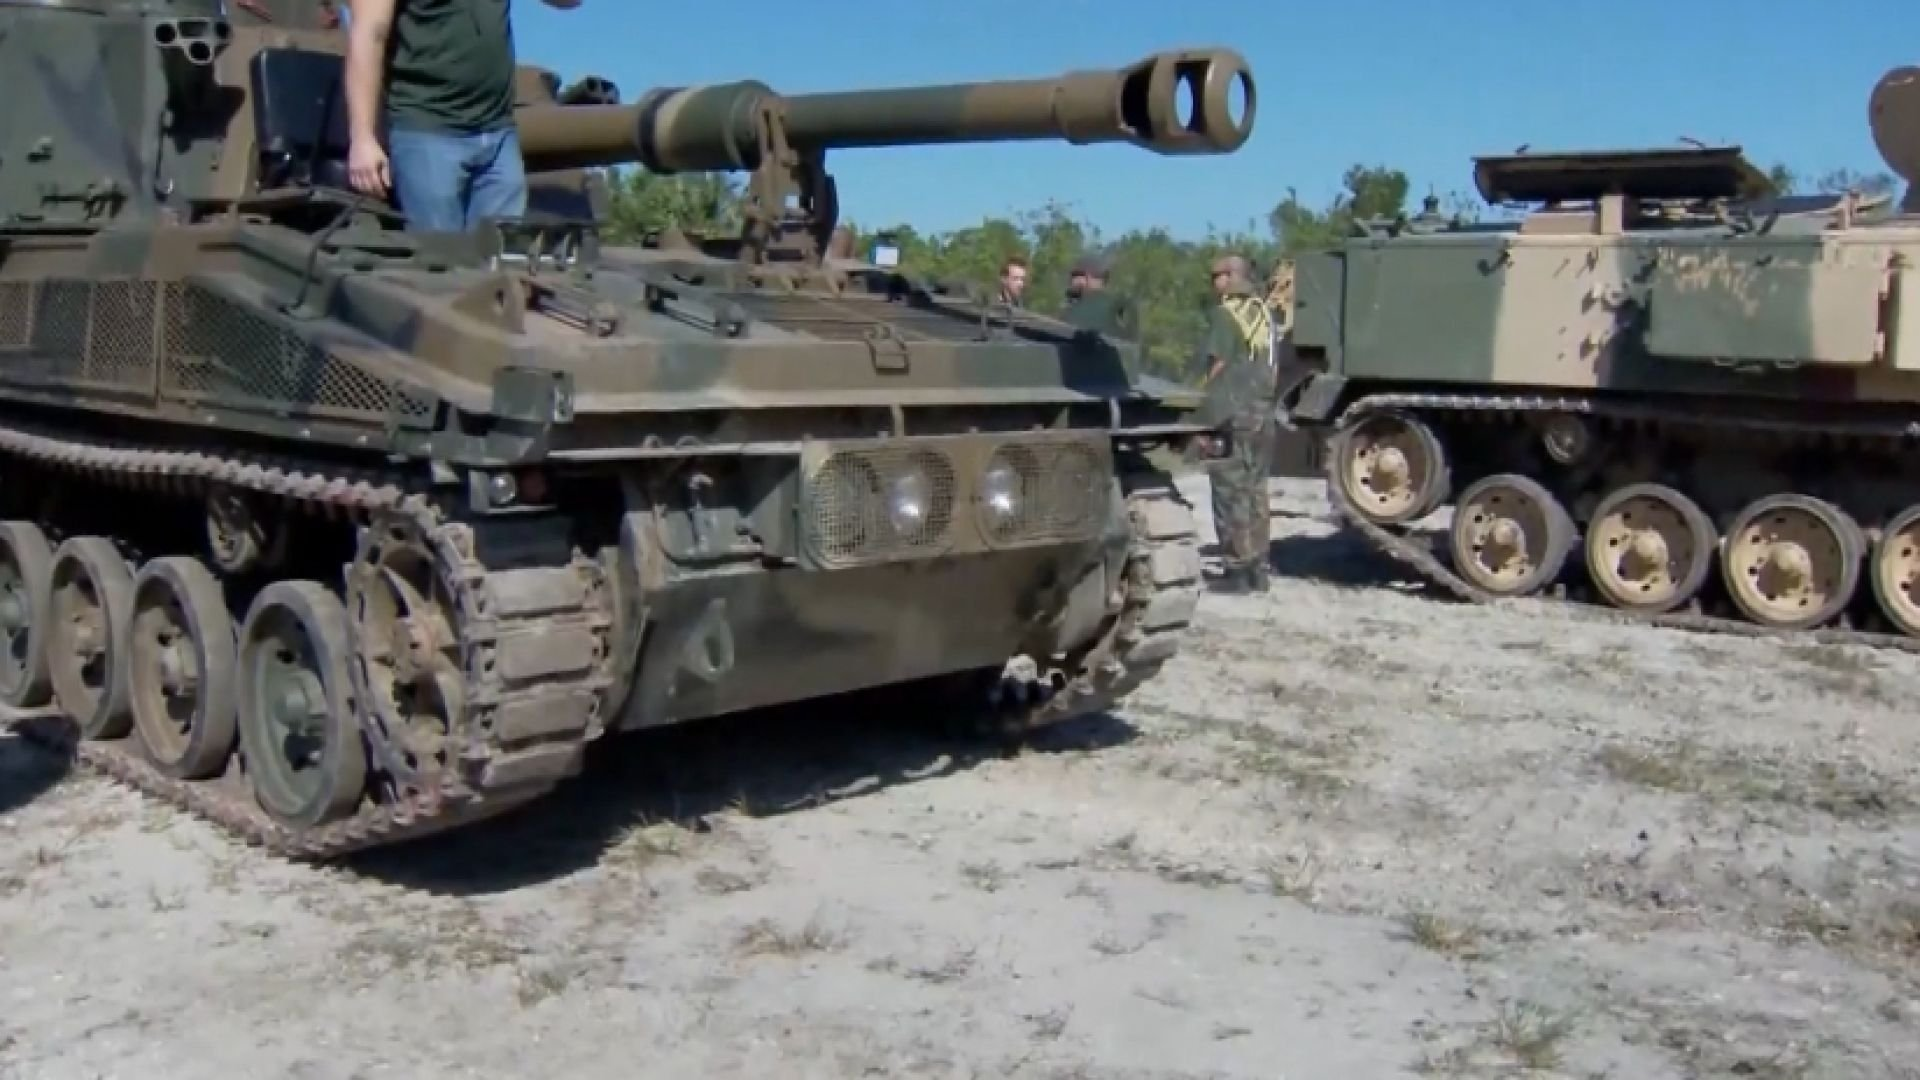 Now you have a chance to drive a tank over a car at Tank America in Florida. (WESH)